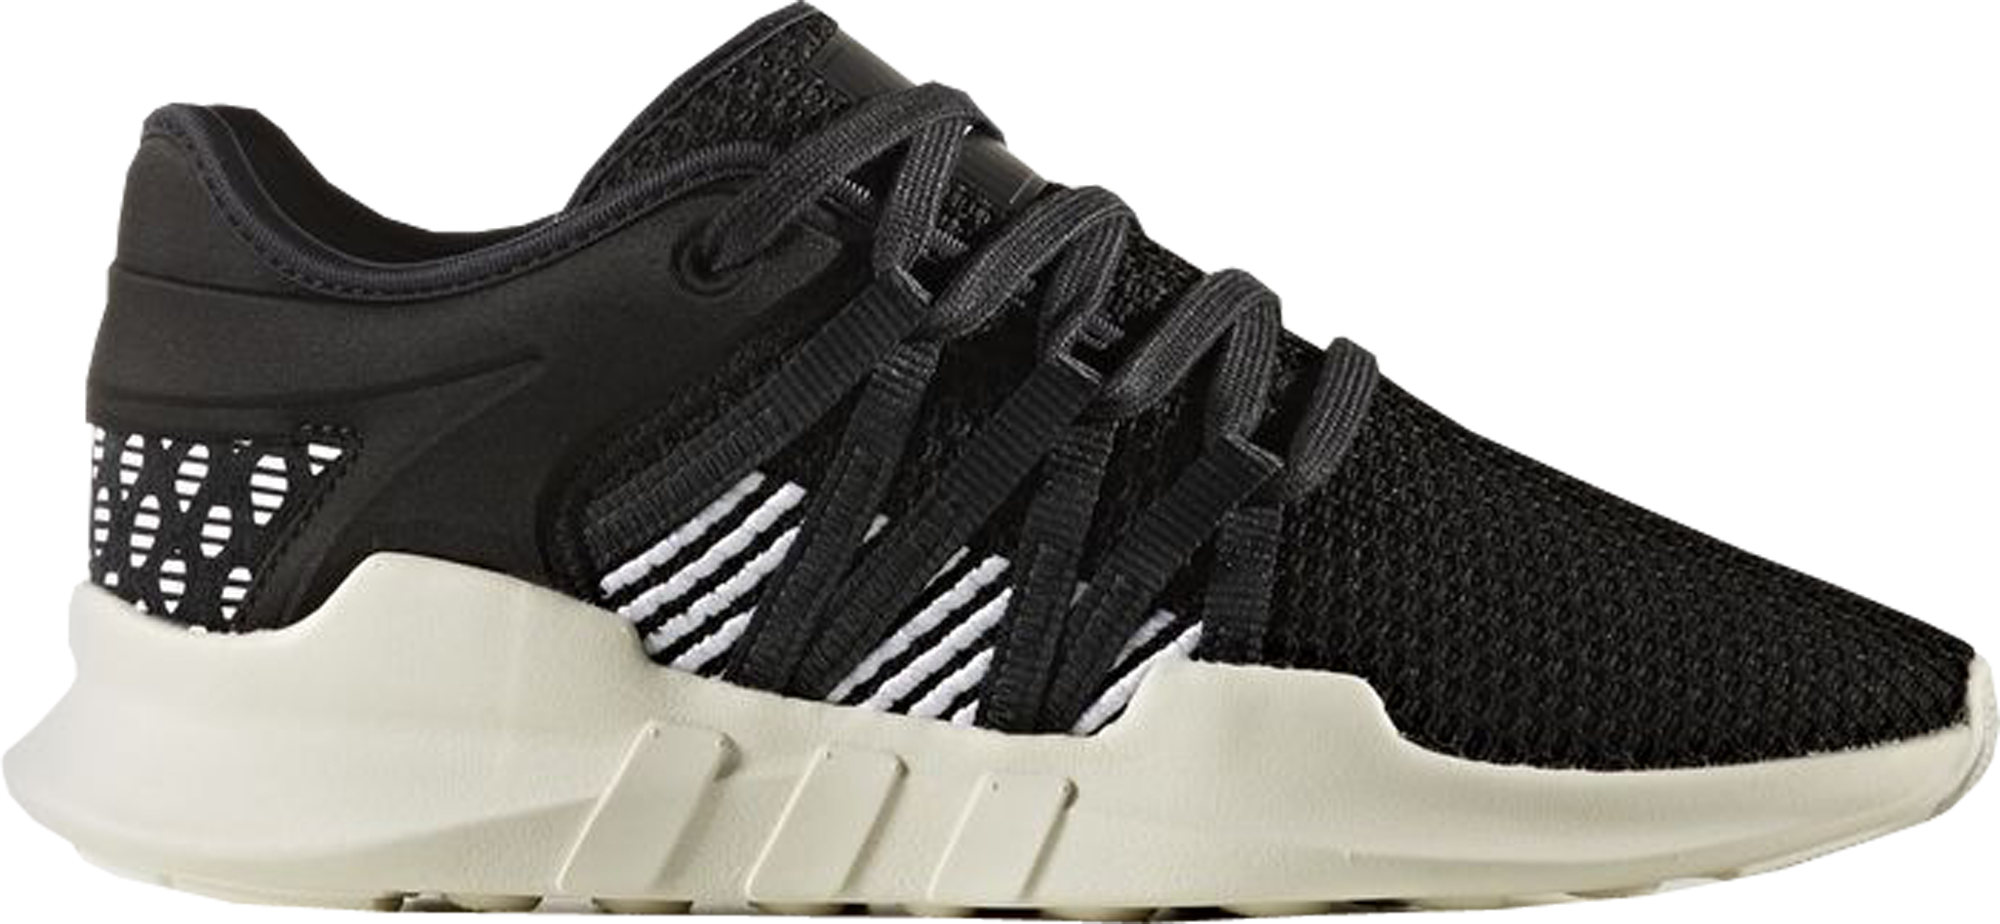 adidas EQT Racing Adv Core Black Off White (W)